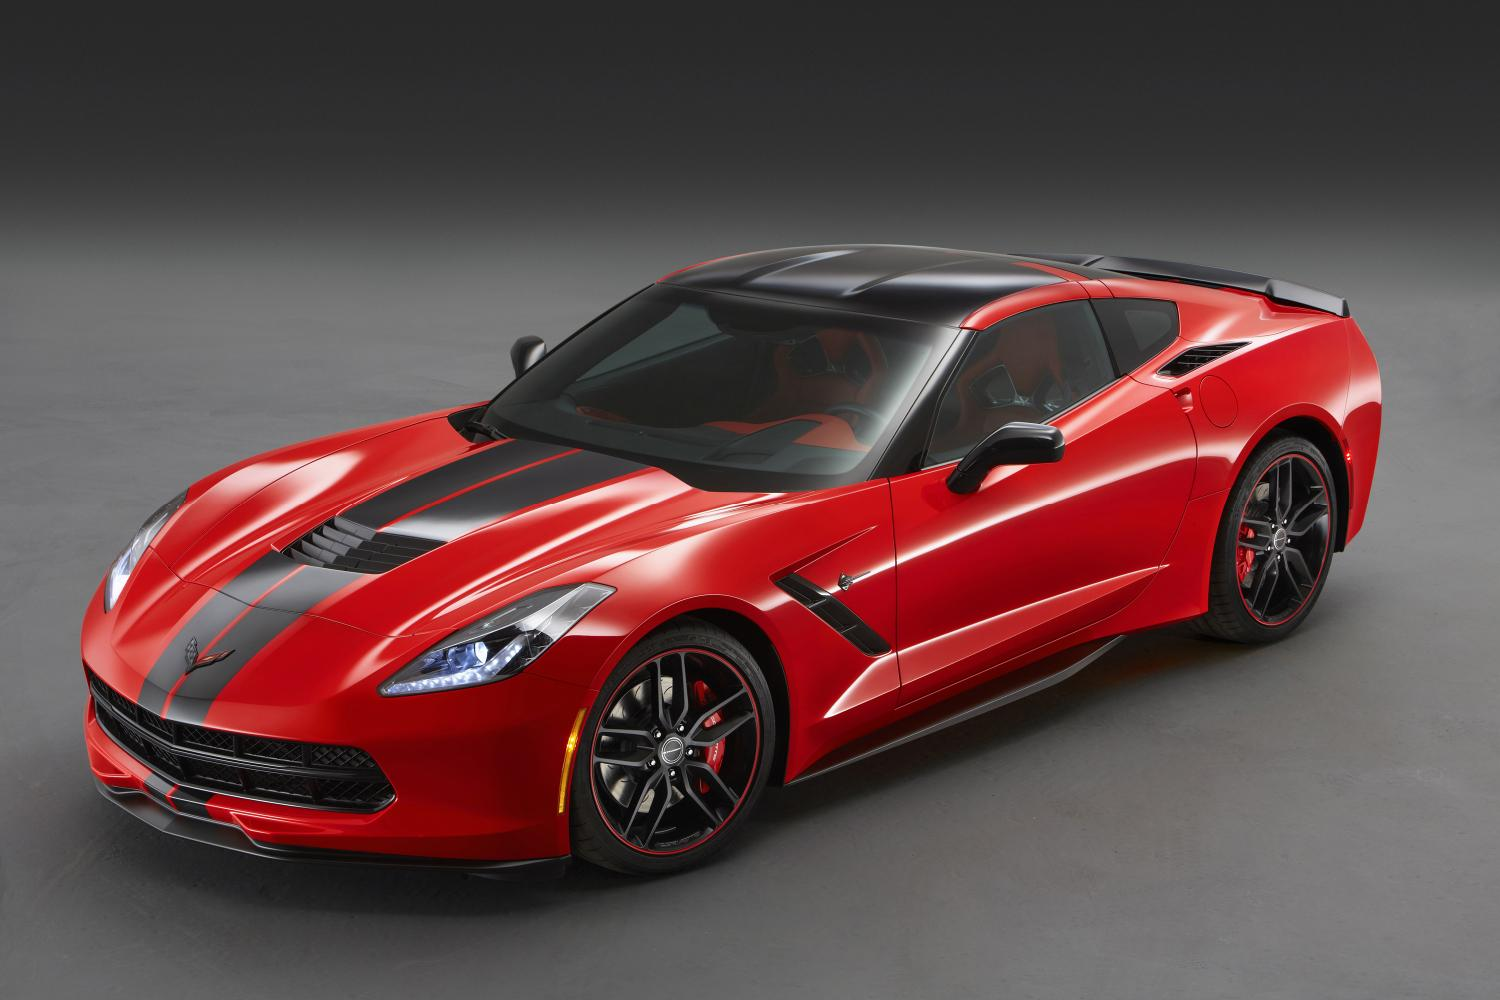 http://www.gtspirit.com/wp-content/uploads/2013/11/2013-SEMA-Corvette-Stingray-Pacific-Coupe.jpg